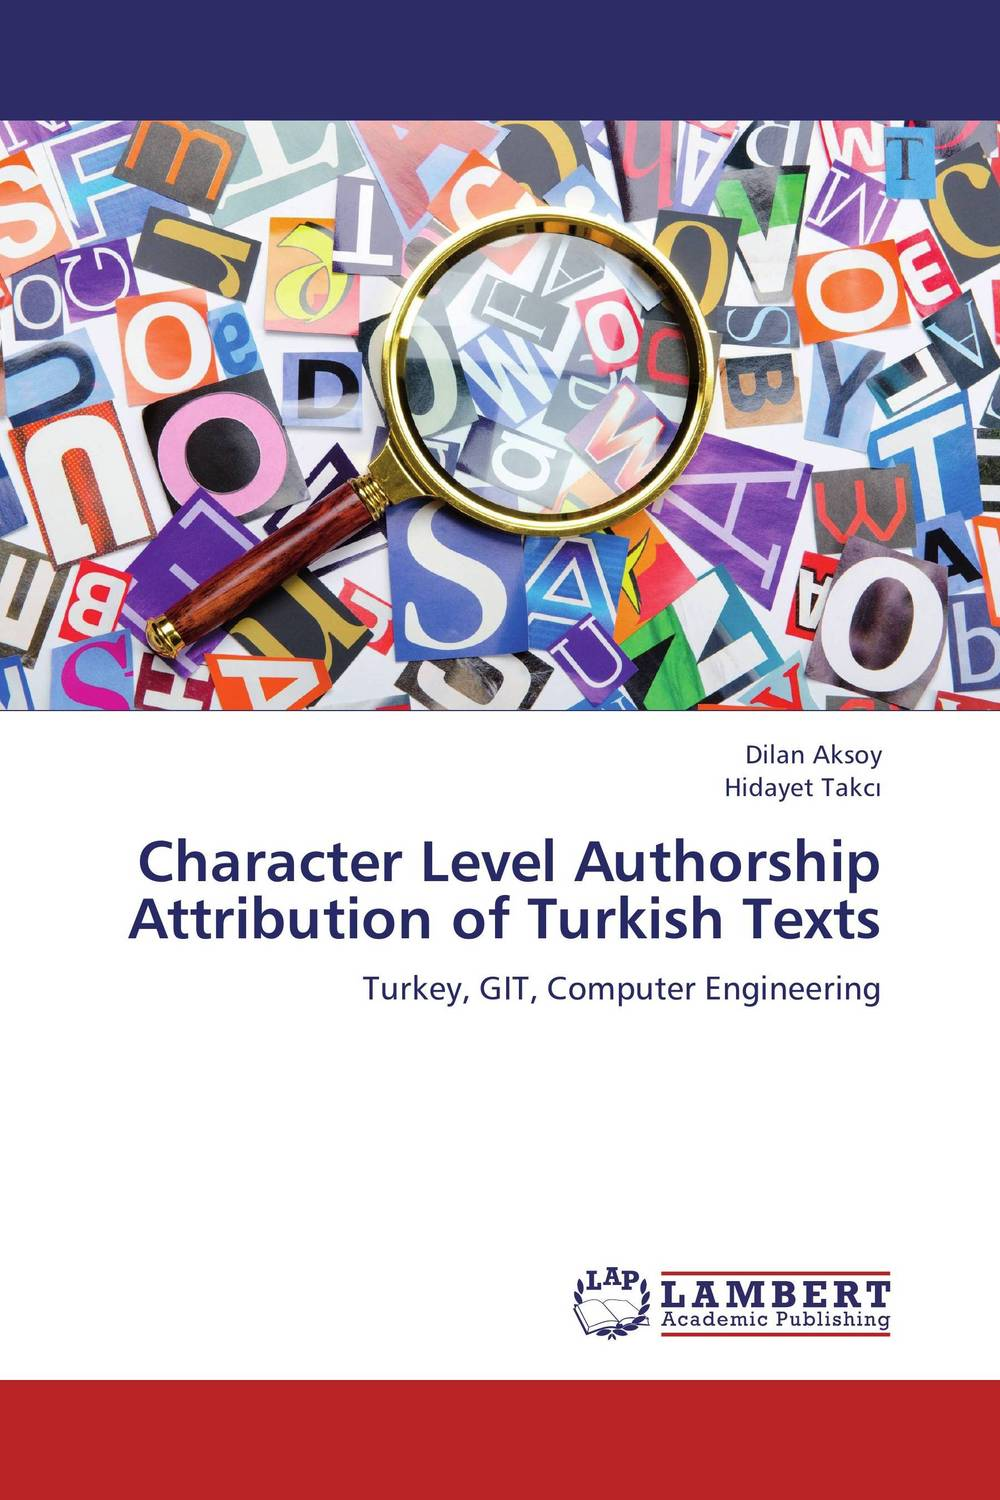 Character Level Authorship Attribution of Turkish Texts the ascension of authorship – attribution and canon formation in jewish hellenistic and christian traditions